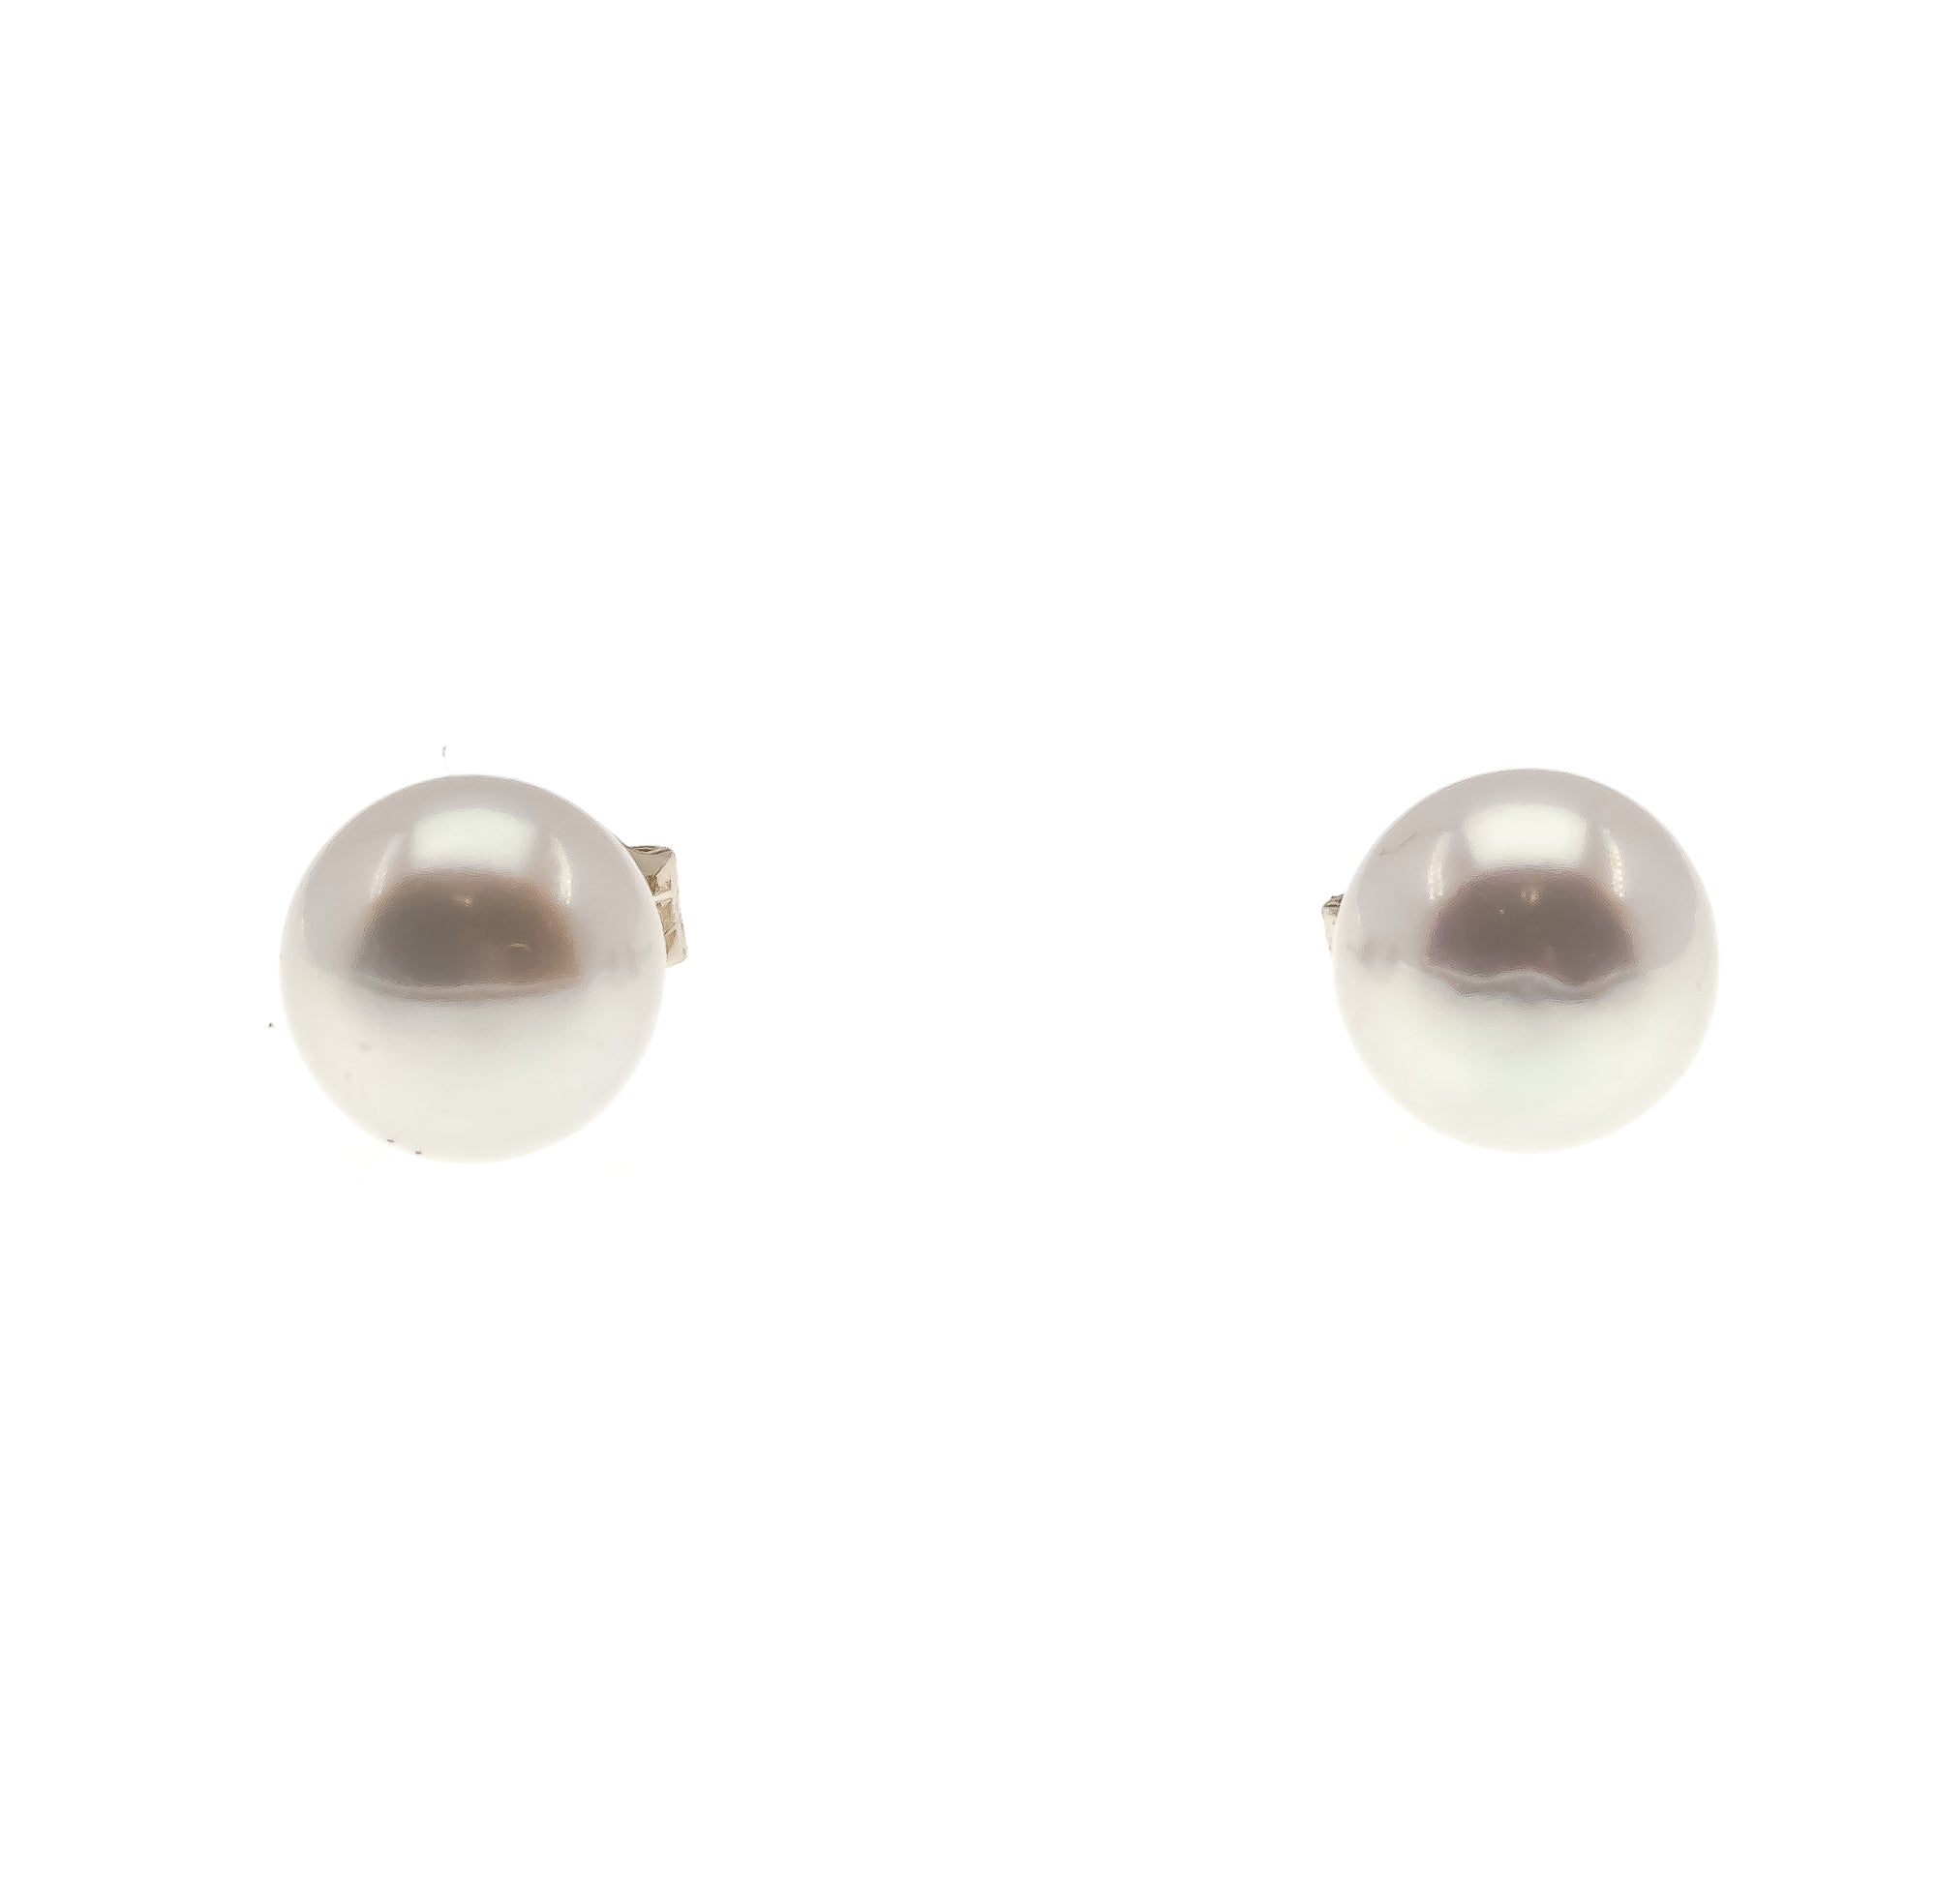 Lustrous Classics - Vintage 14K Yellow Gold Cultured Akoya Pearl Stud Earrings (VE114)